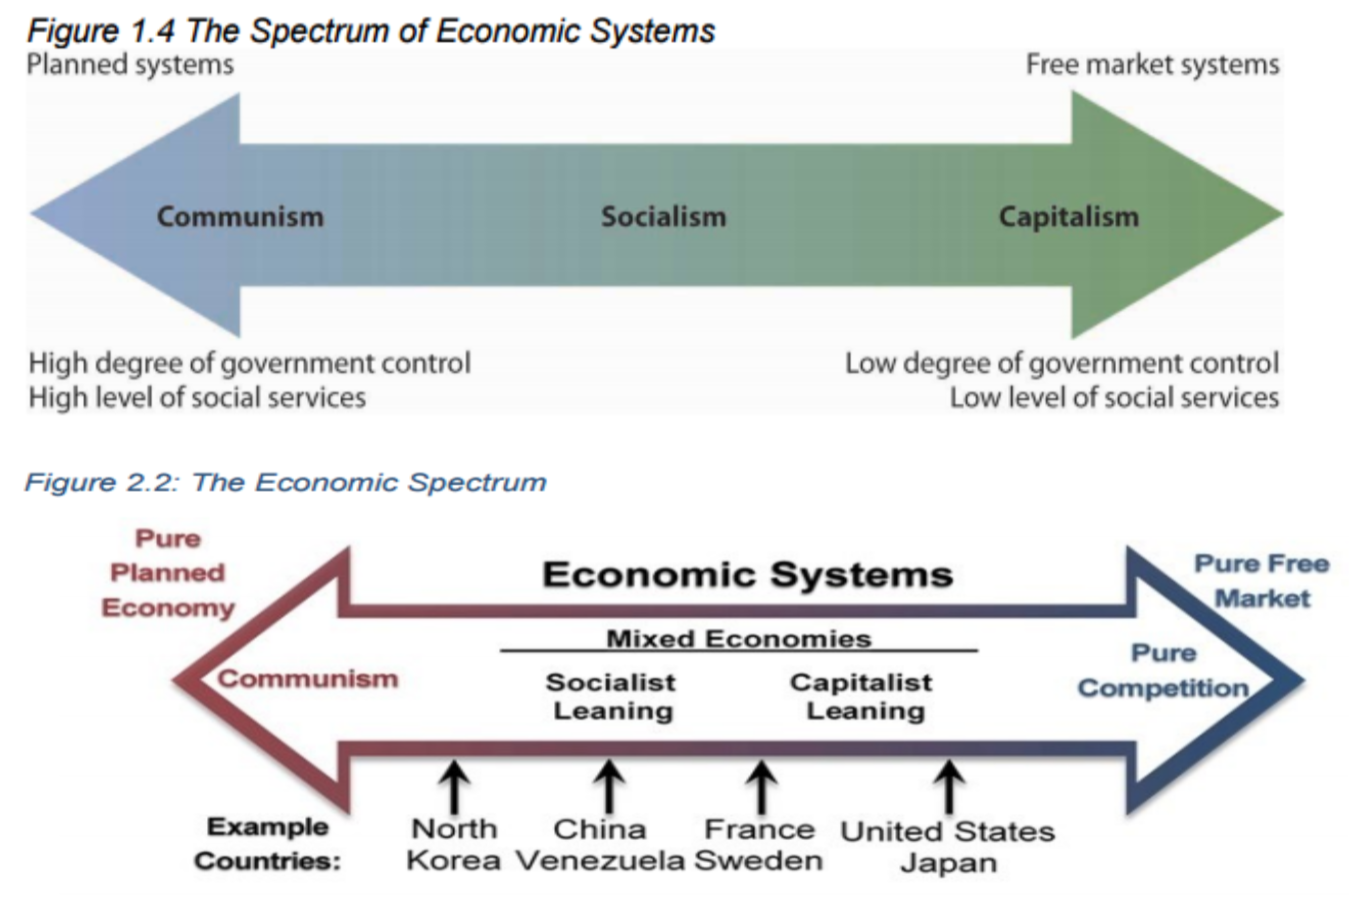 Figure 1.4 The Spectrum of Economic Systems